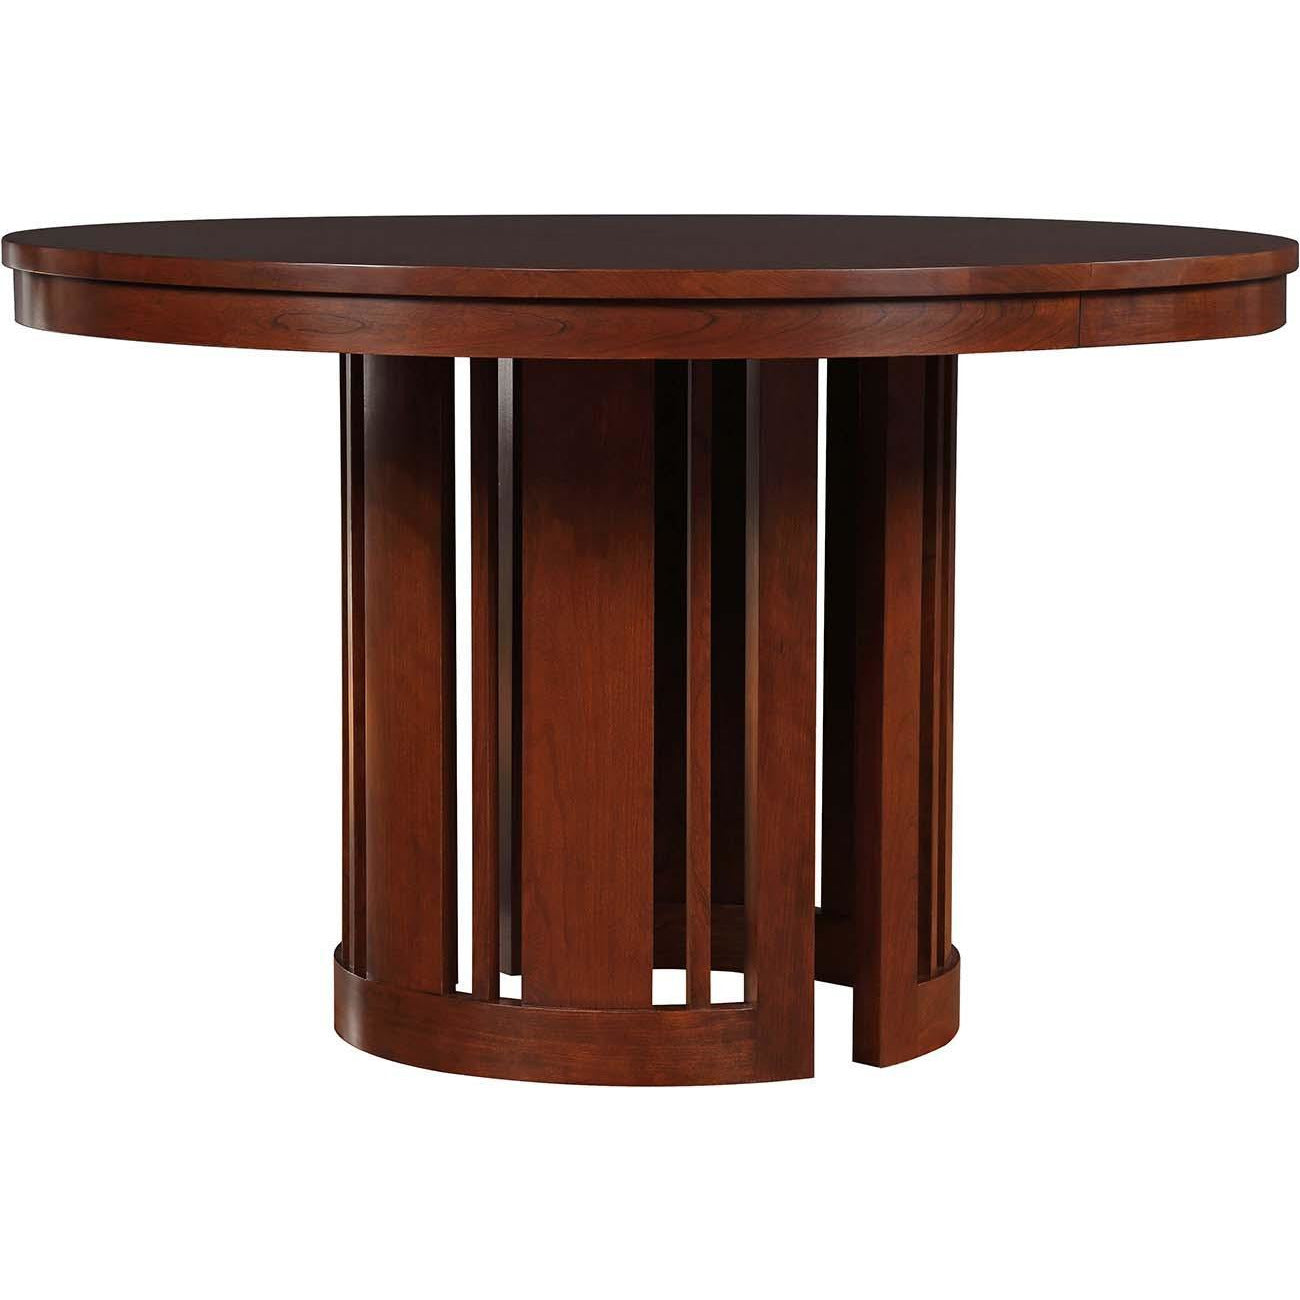 Park Slope Round Dining Table with Leaves